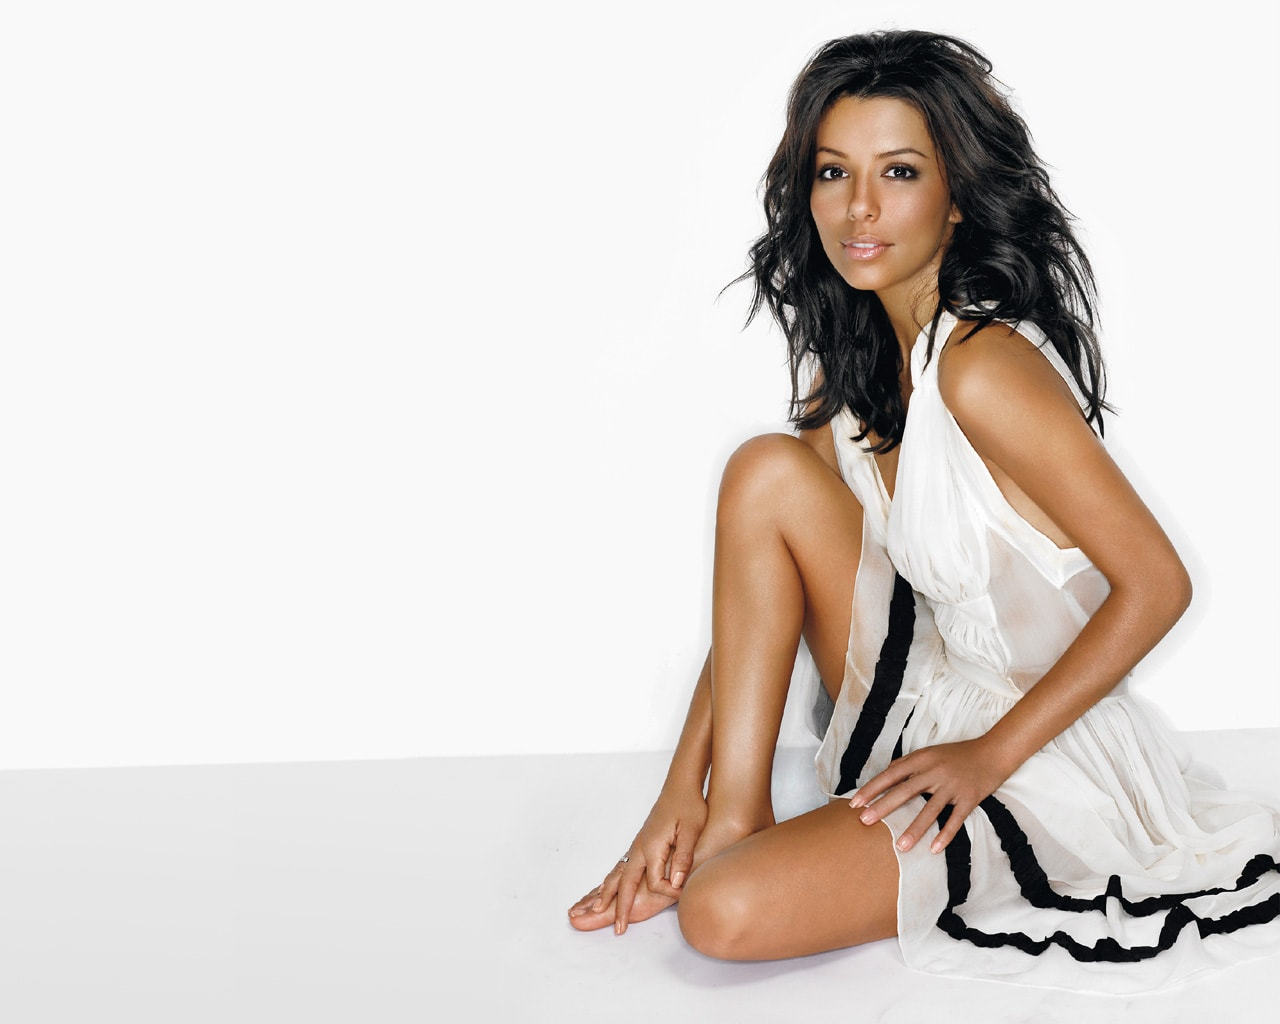 Eva Longoria HQ wallpapers